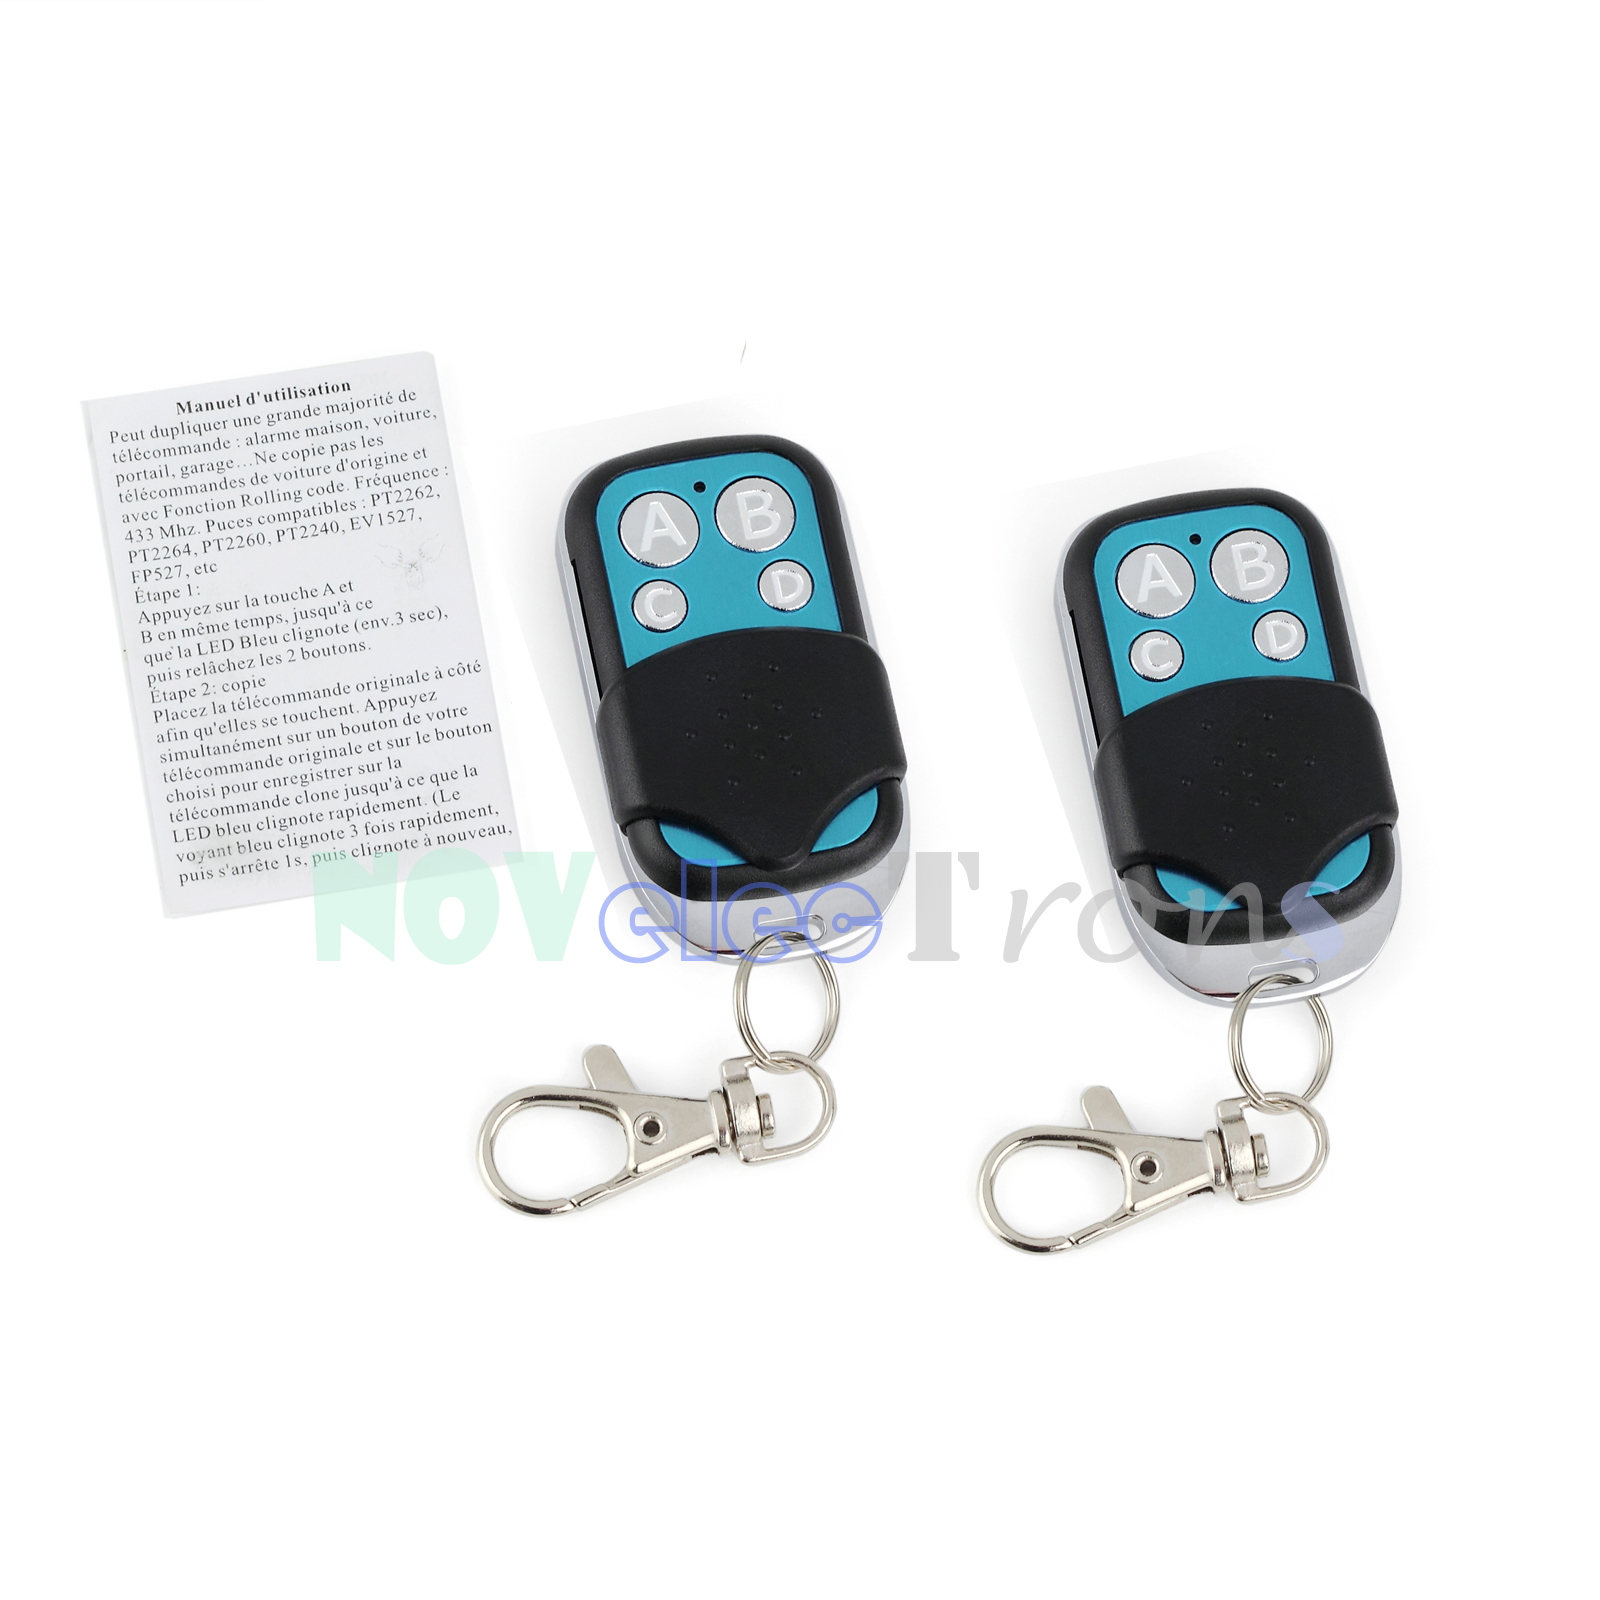 Garage Door Light Blinks Five Times: 2xUniversal Electric Gate Remote Control Fob Cloning Key